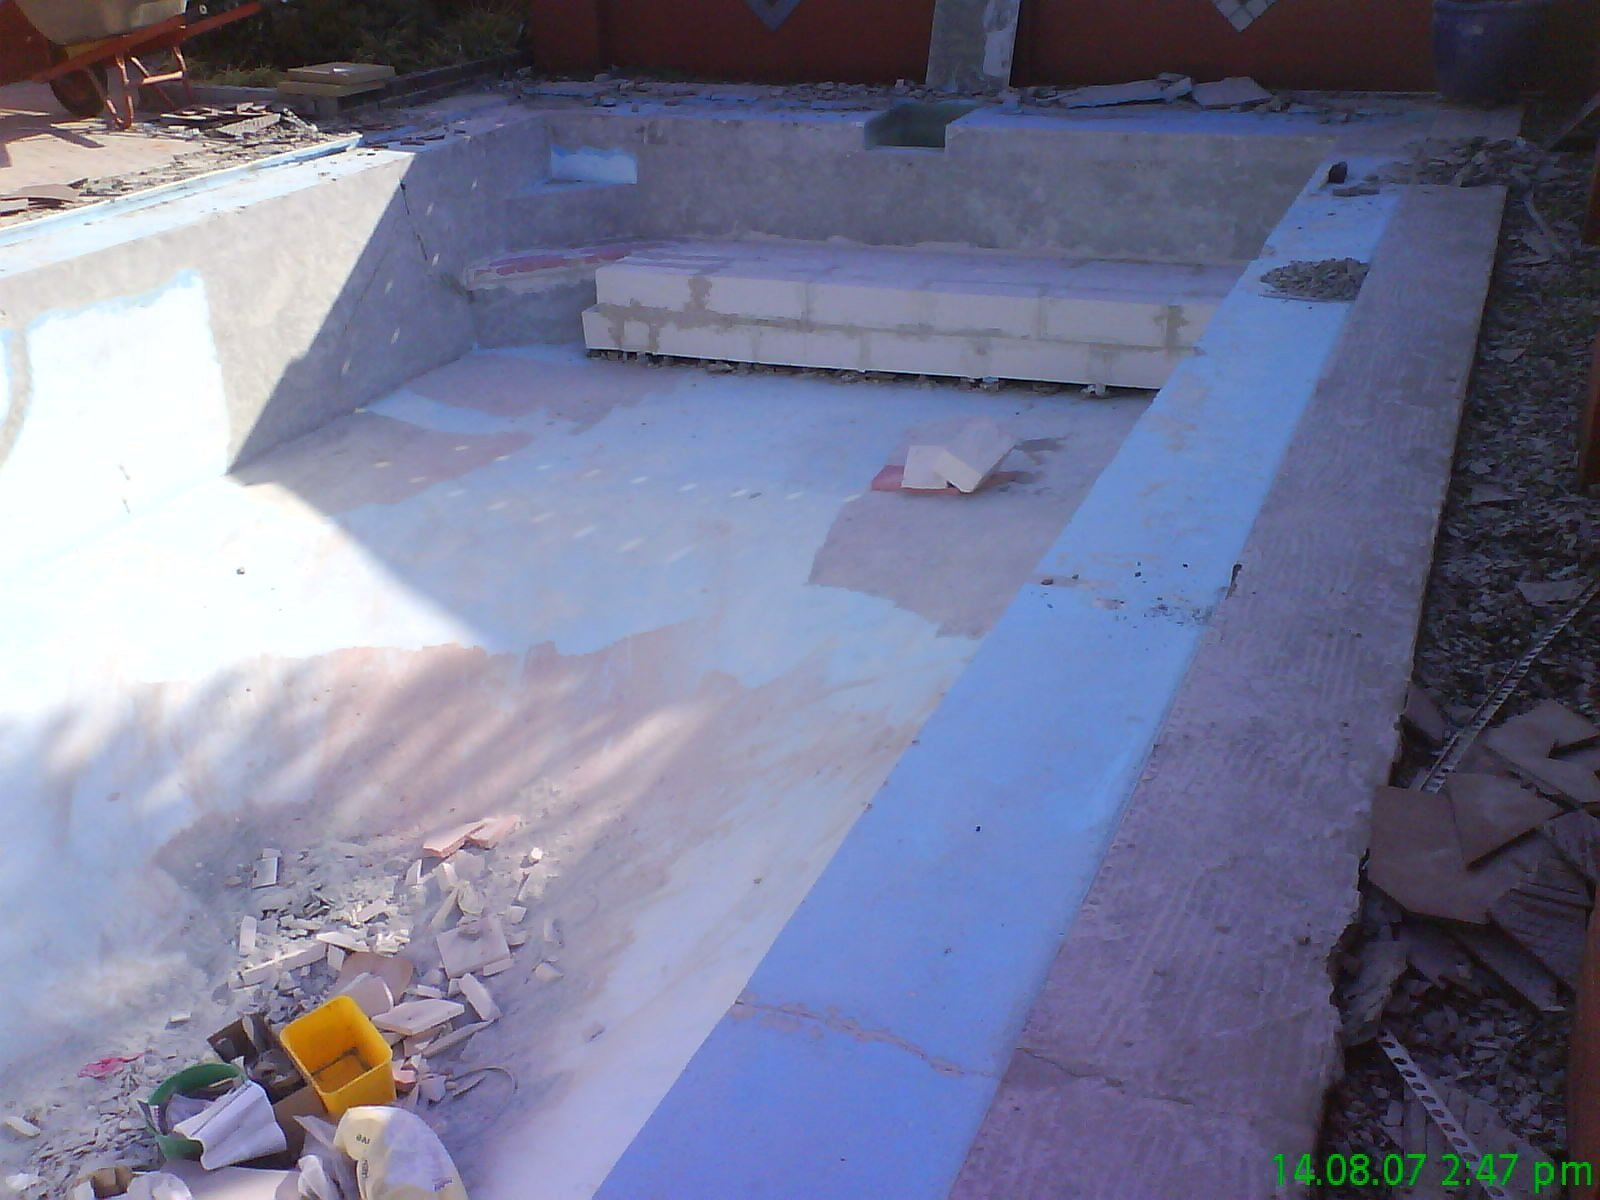 Restoration work in progress on pool